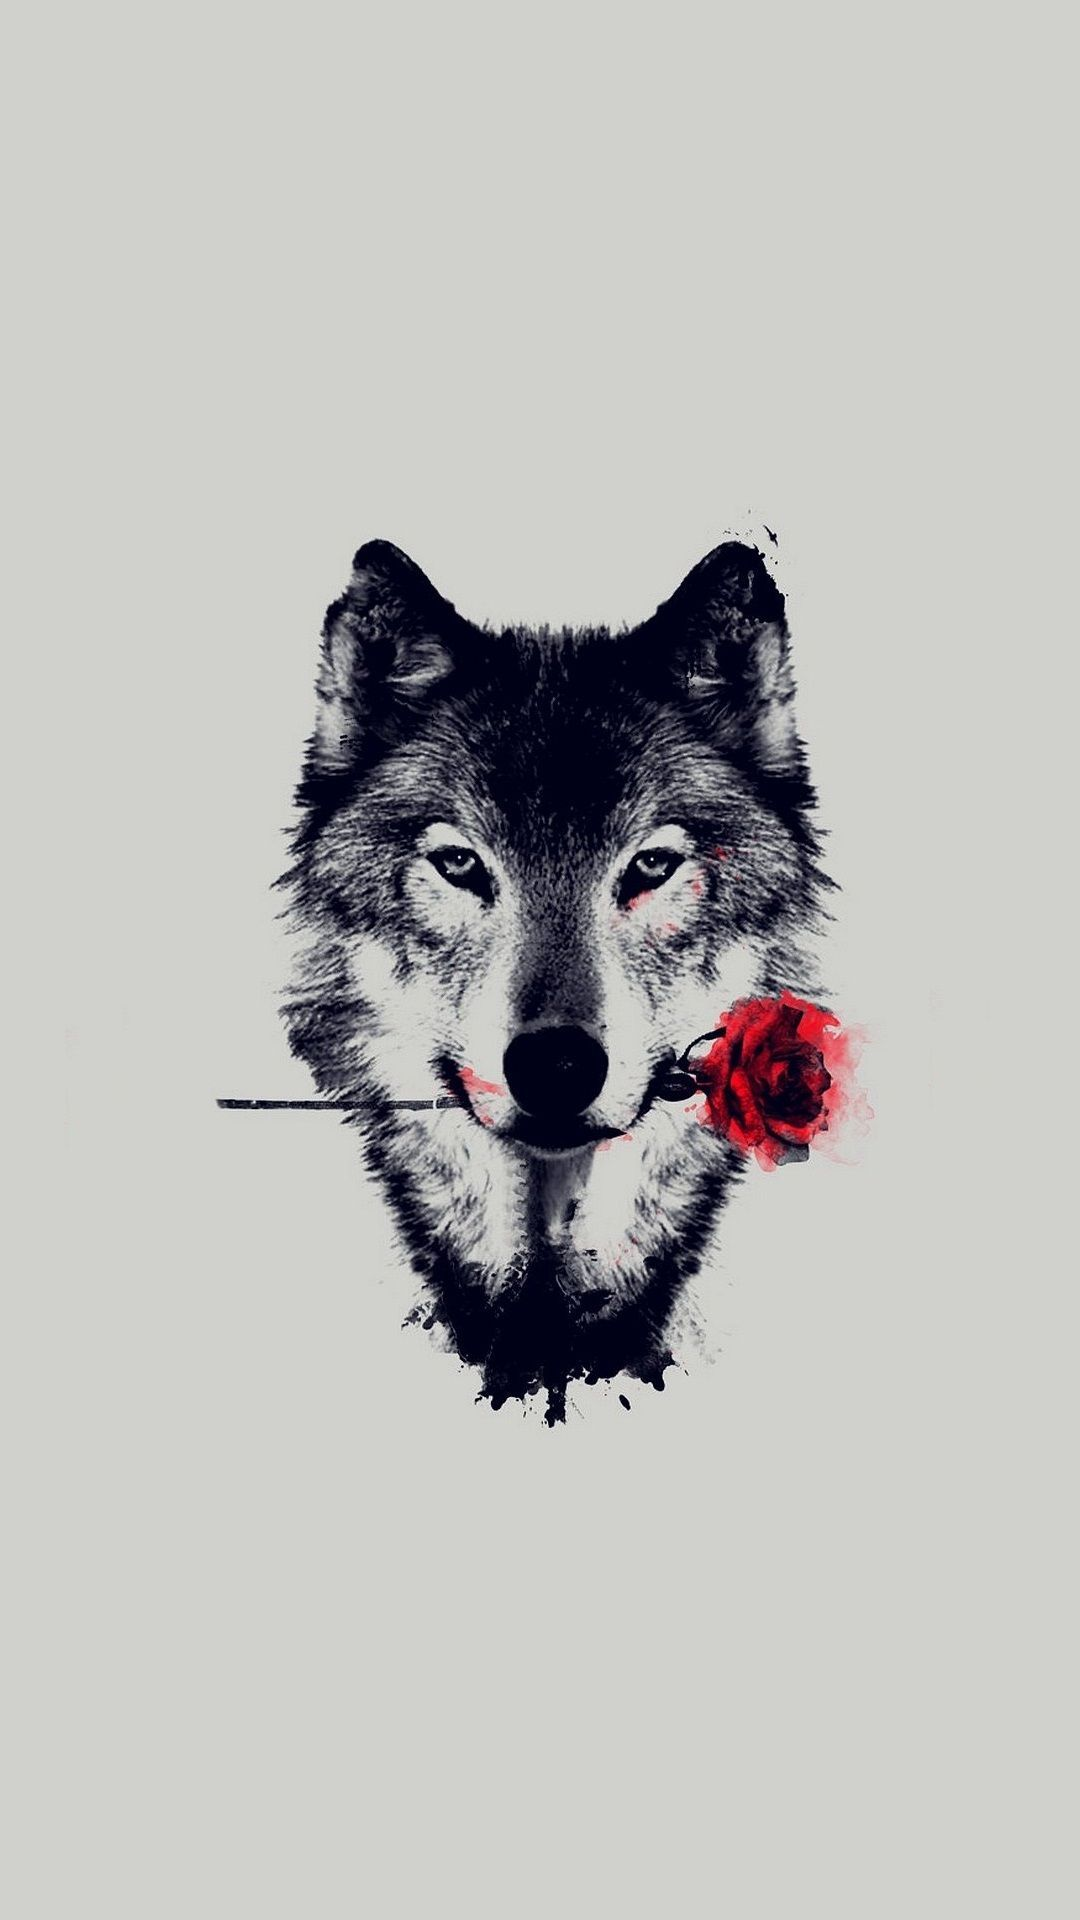 iPhone Wolf Wallpaper – Transform Your iPhone Into Something Straight From the Movie